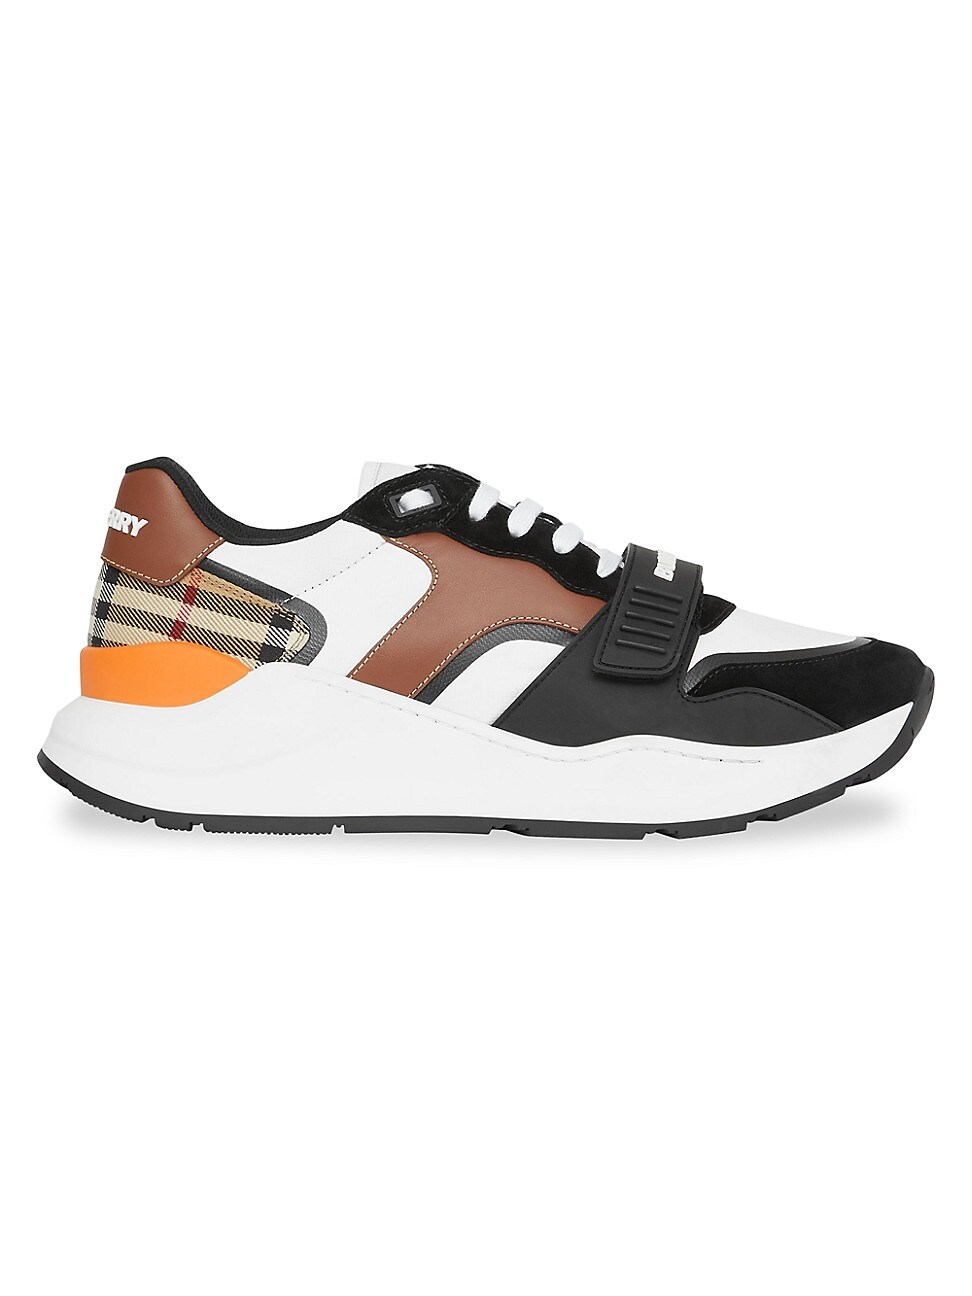 Burberry Leathers WOMEN'S RAMSEY LOW-TOP SNEAKERS